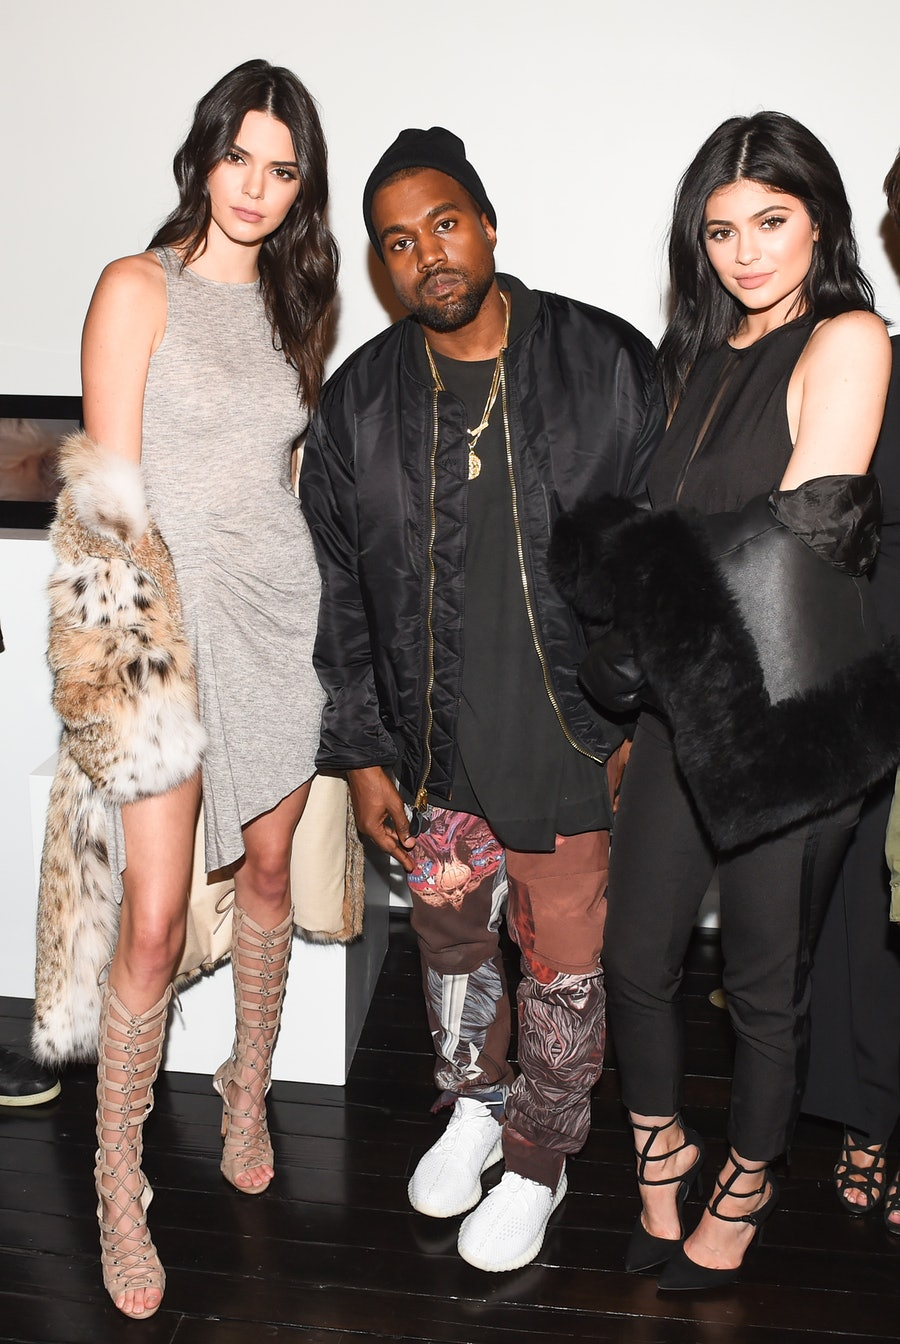 KENDALL JENNER & KYLIE JENNER CELEBRATE: THE LAUNCH OF KENDALL + KYLIE